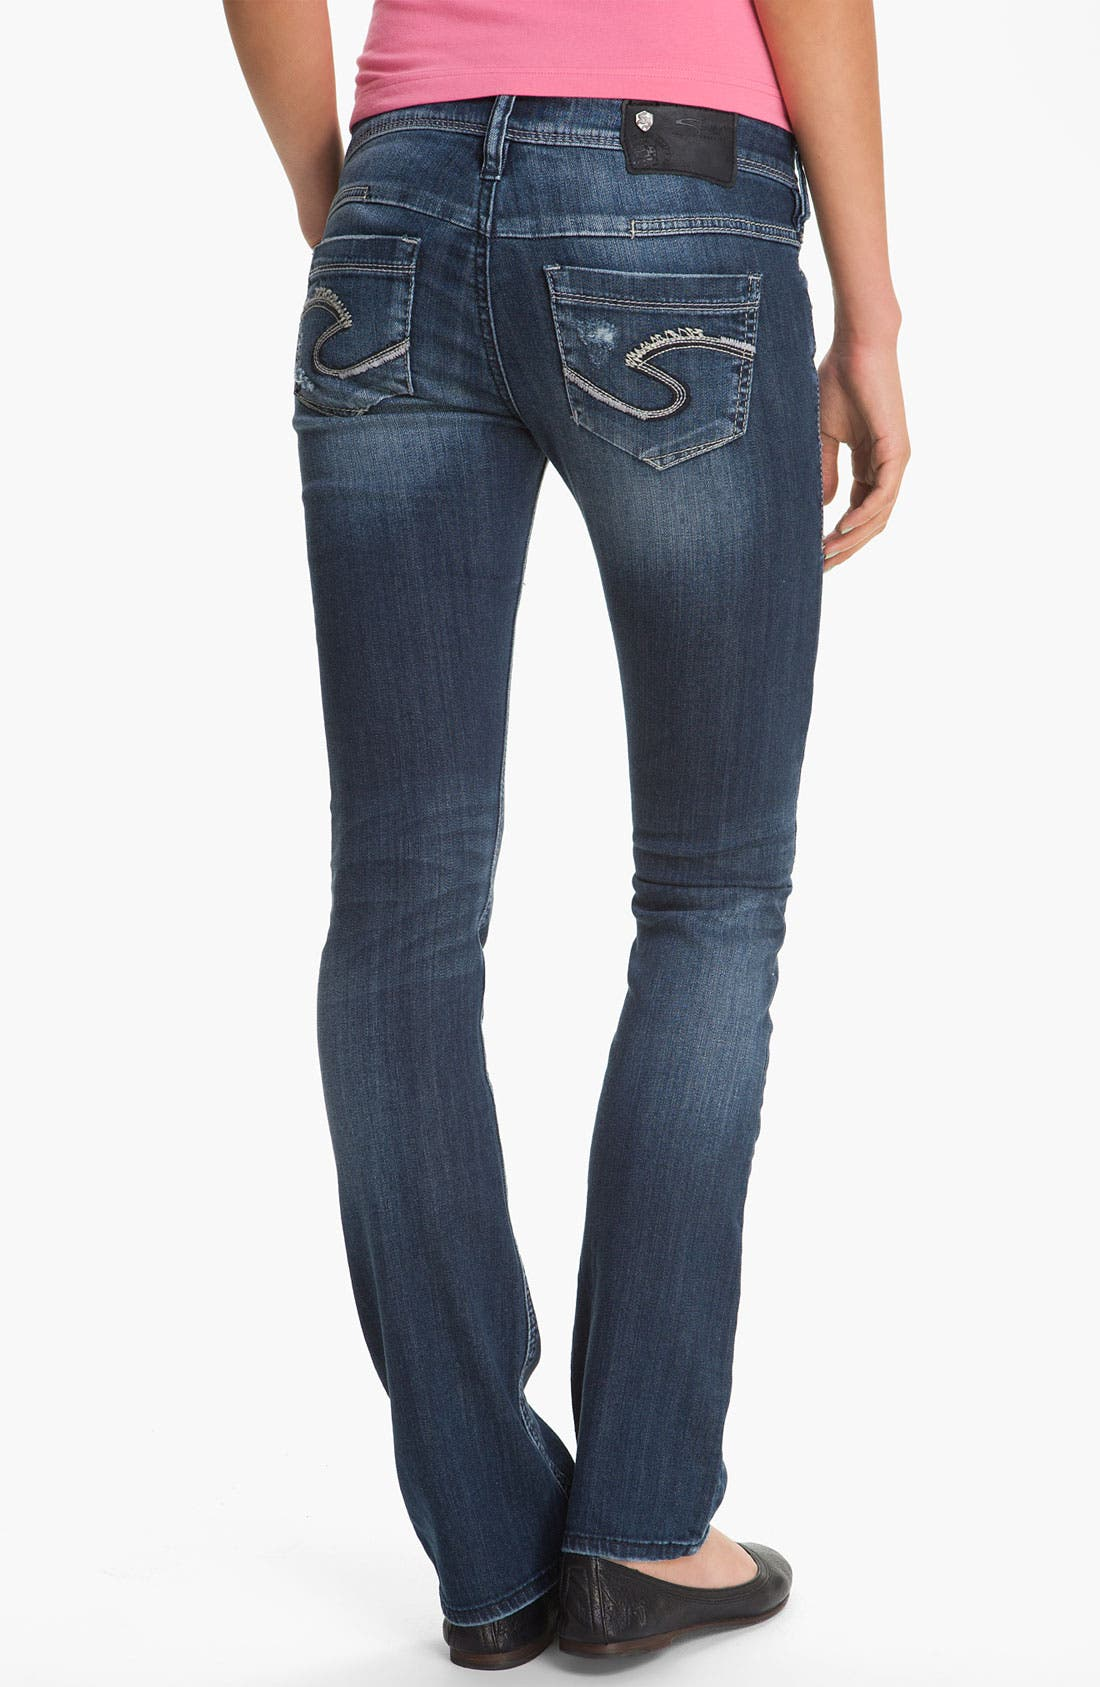 Alternate Image 1 Selected - Silver Jeans Co. 'Manchester' Straight Leg Jeans (Juniors)